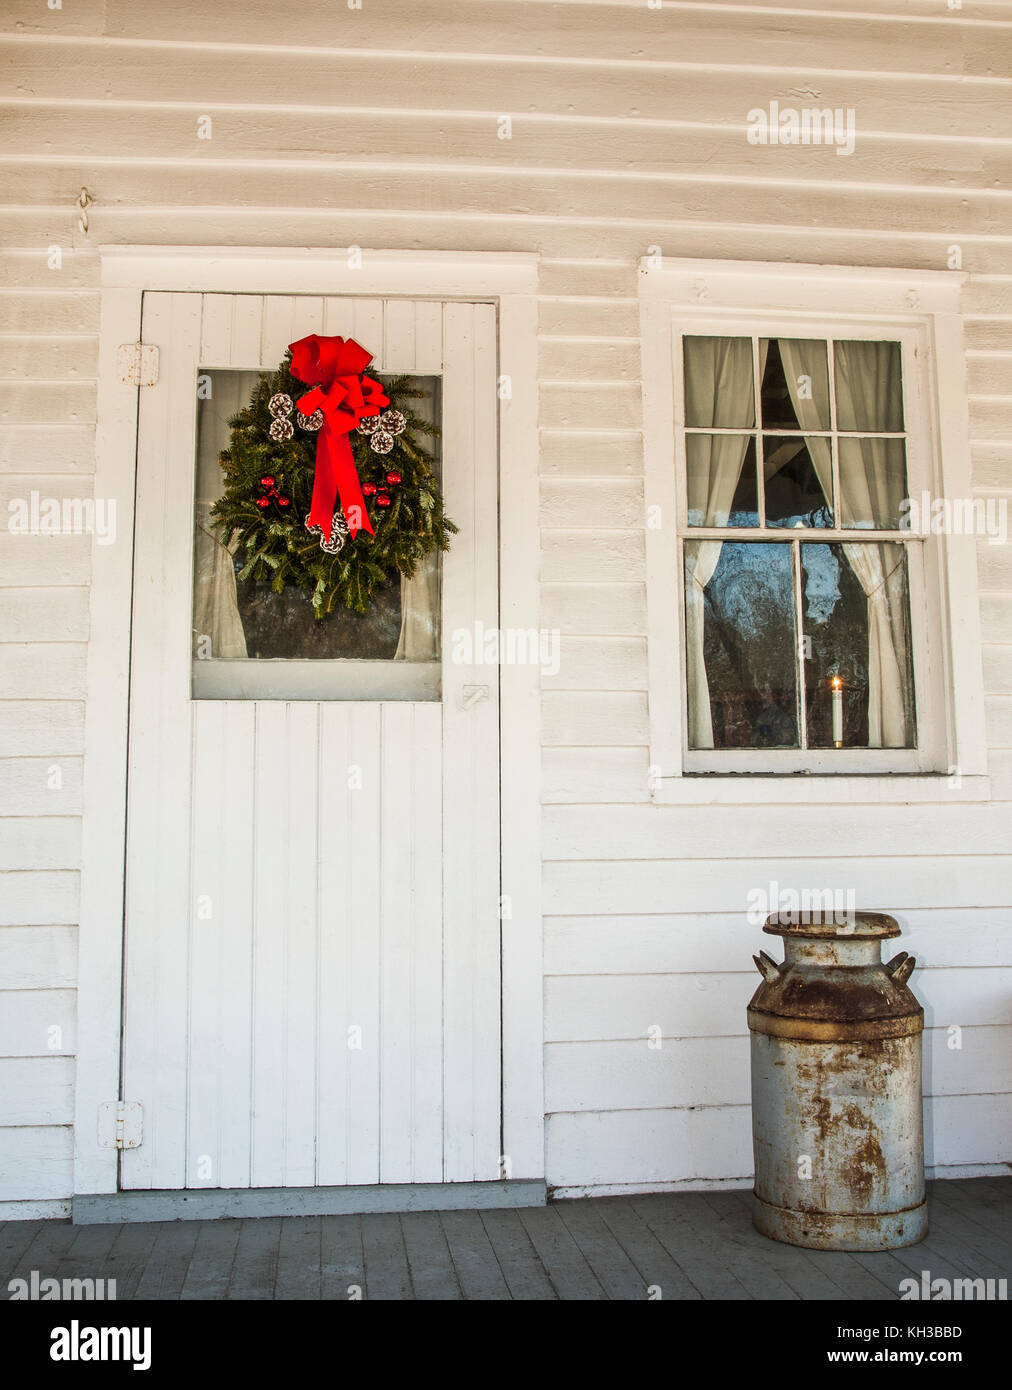 Christmas Wreath On An Old Farmhouse Front Porch Door And A Vintage